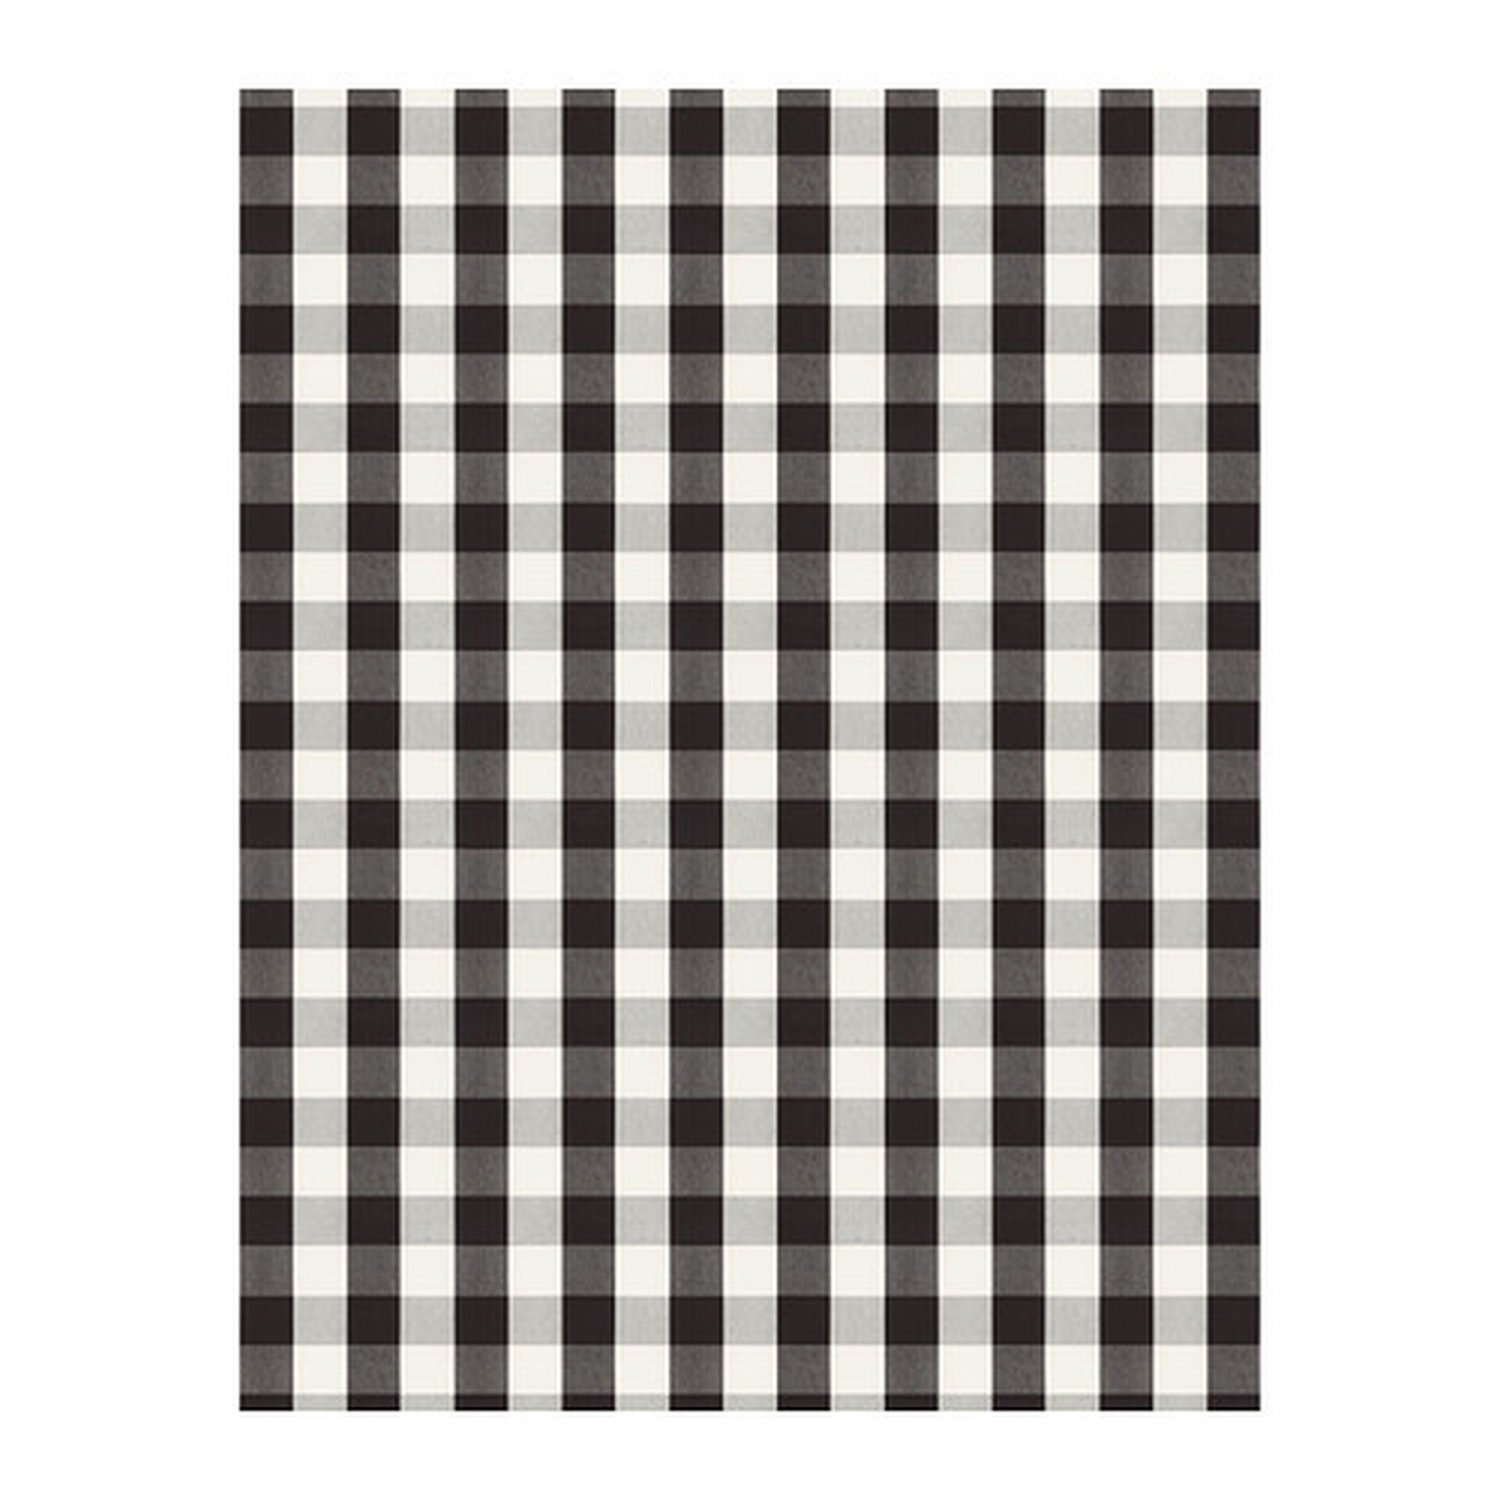 Ikea Berta Ruta Fabric Material Buffalo Check Black White 1 Yd Yarn Dyed Big Grid